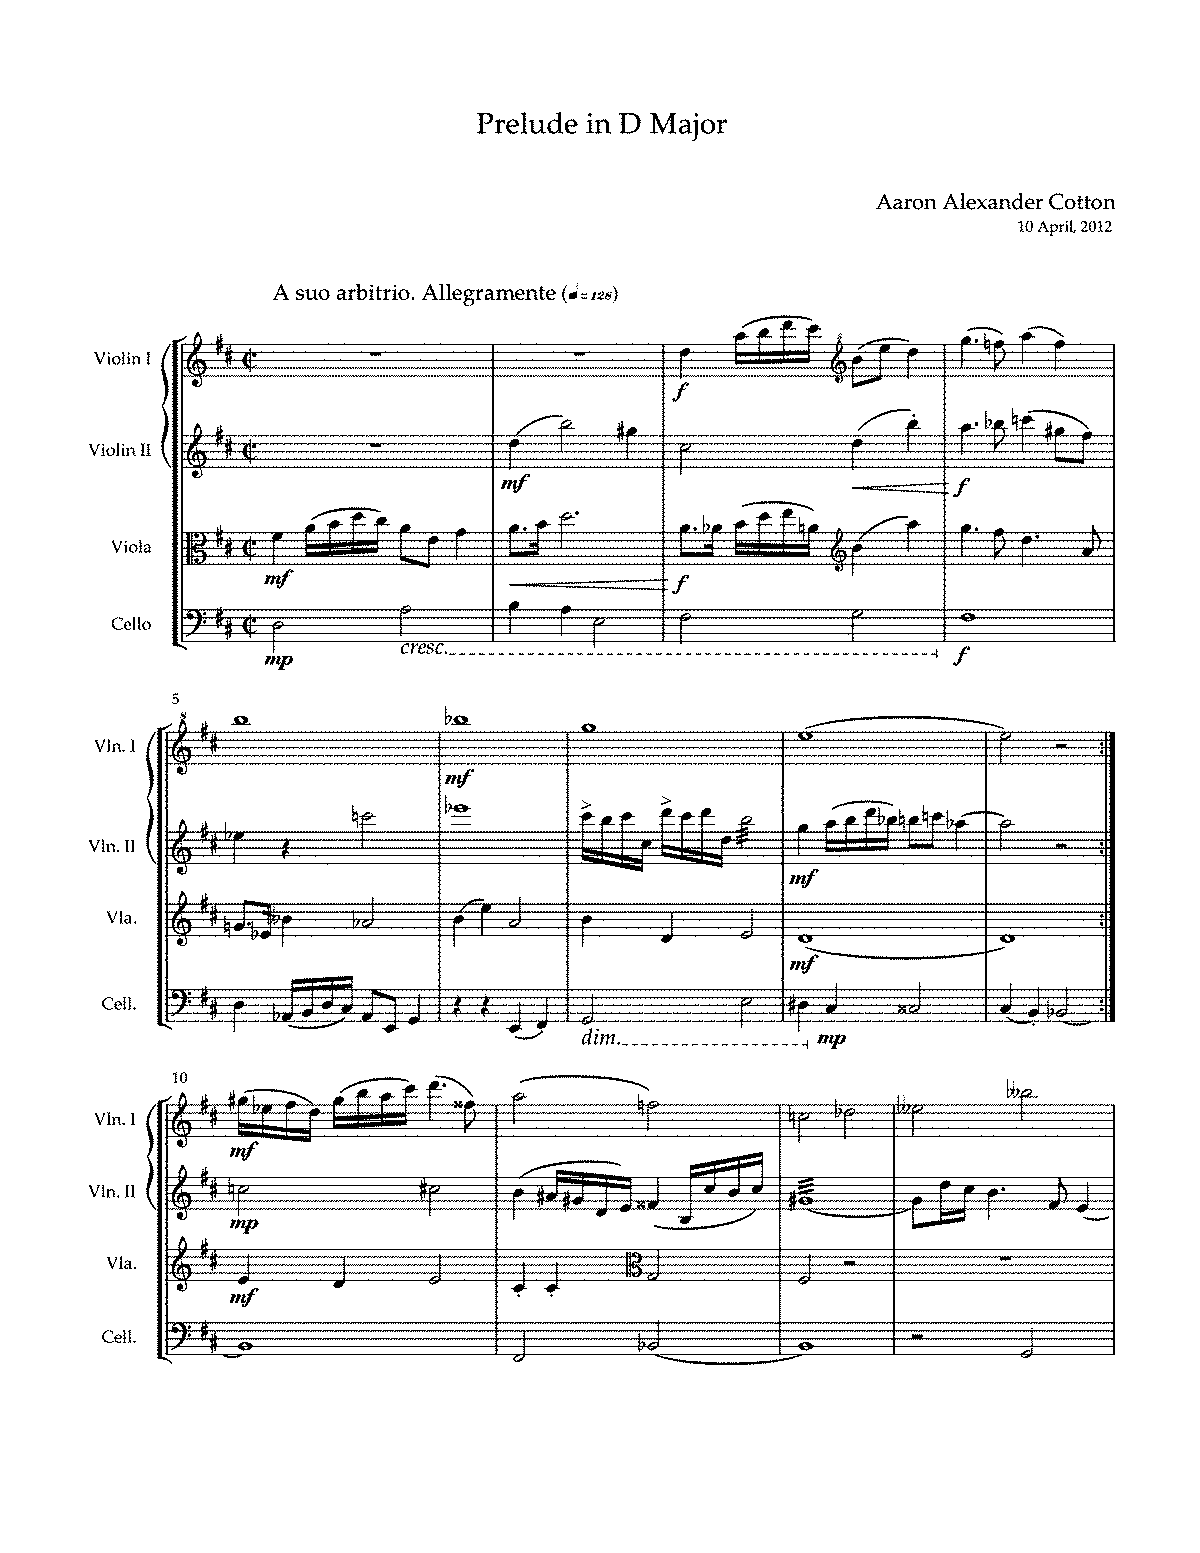 PMLP342004-Prelude in D Major by Aaron Alexander Cotton.pdf